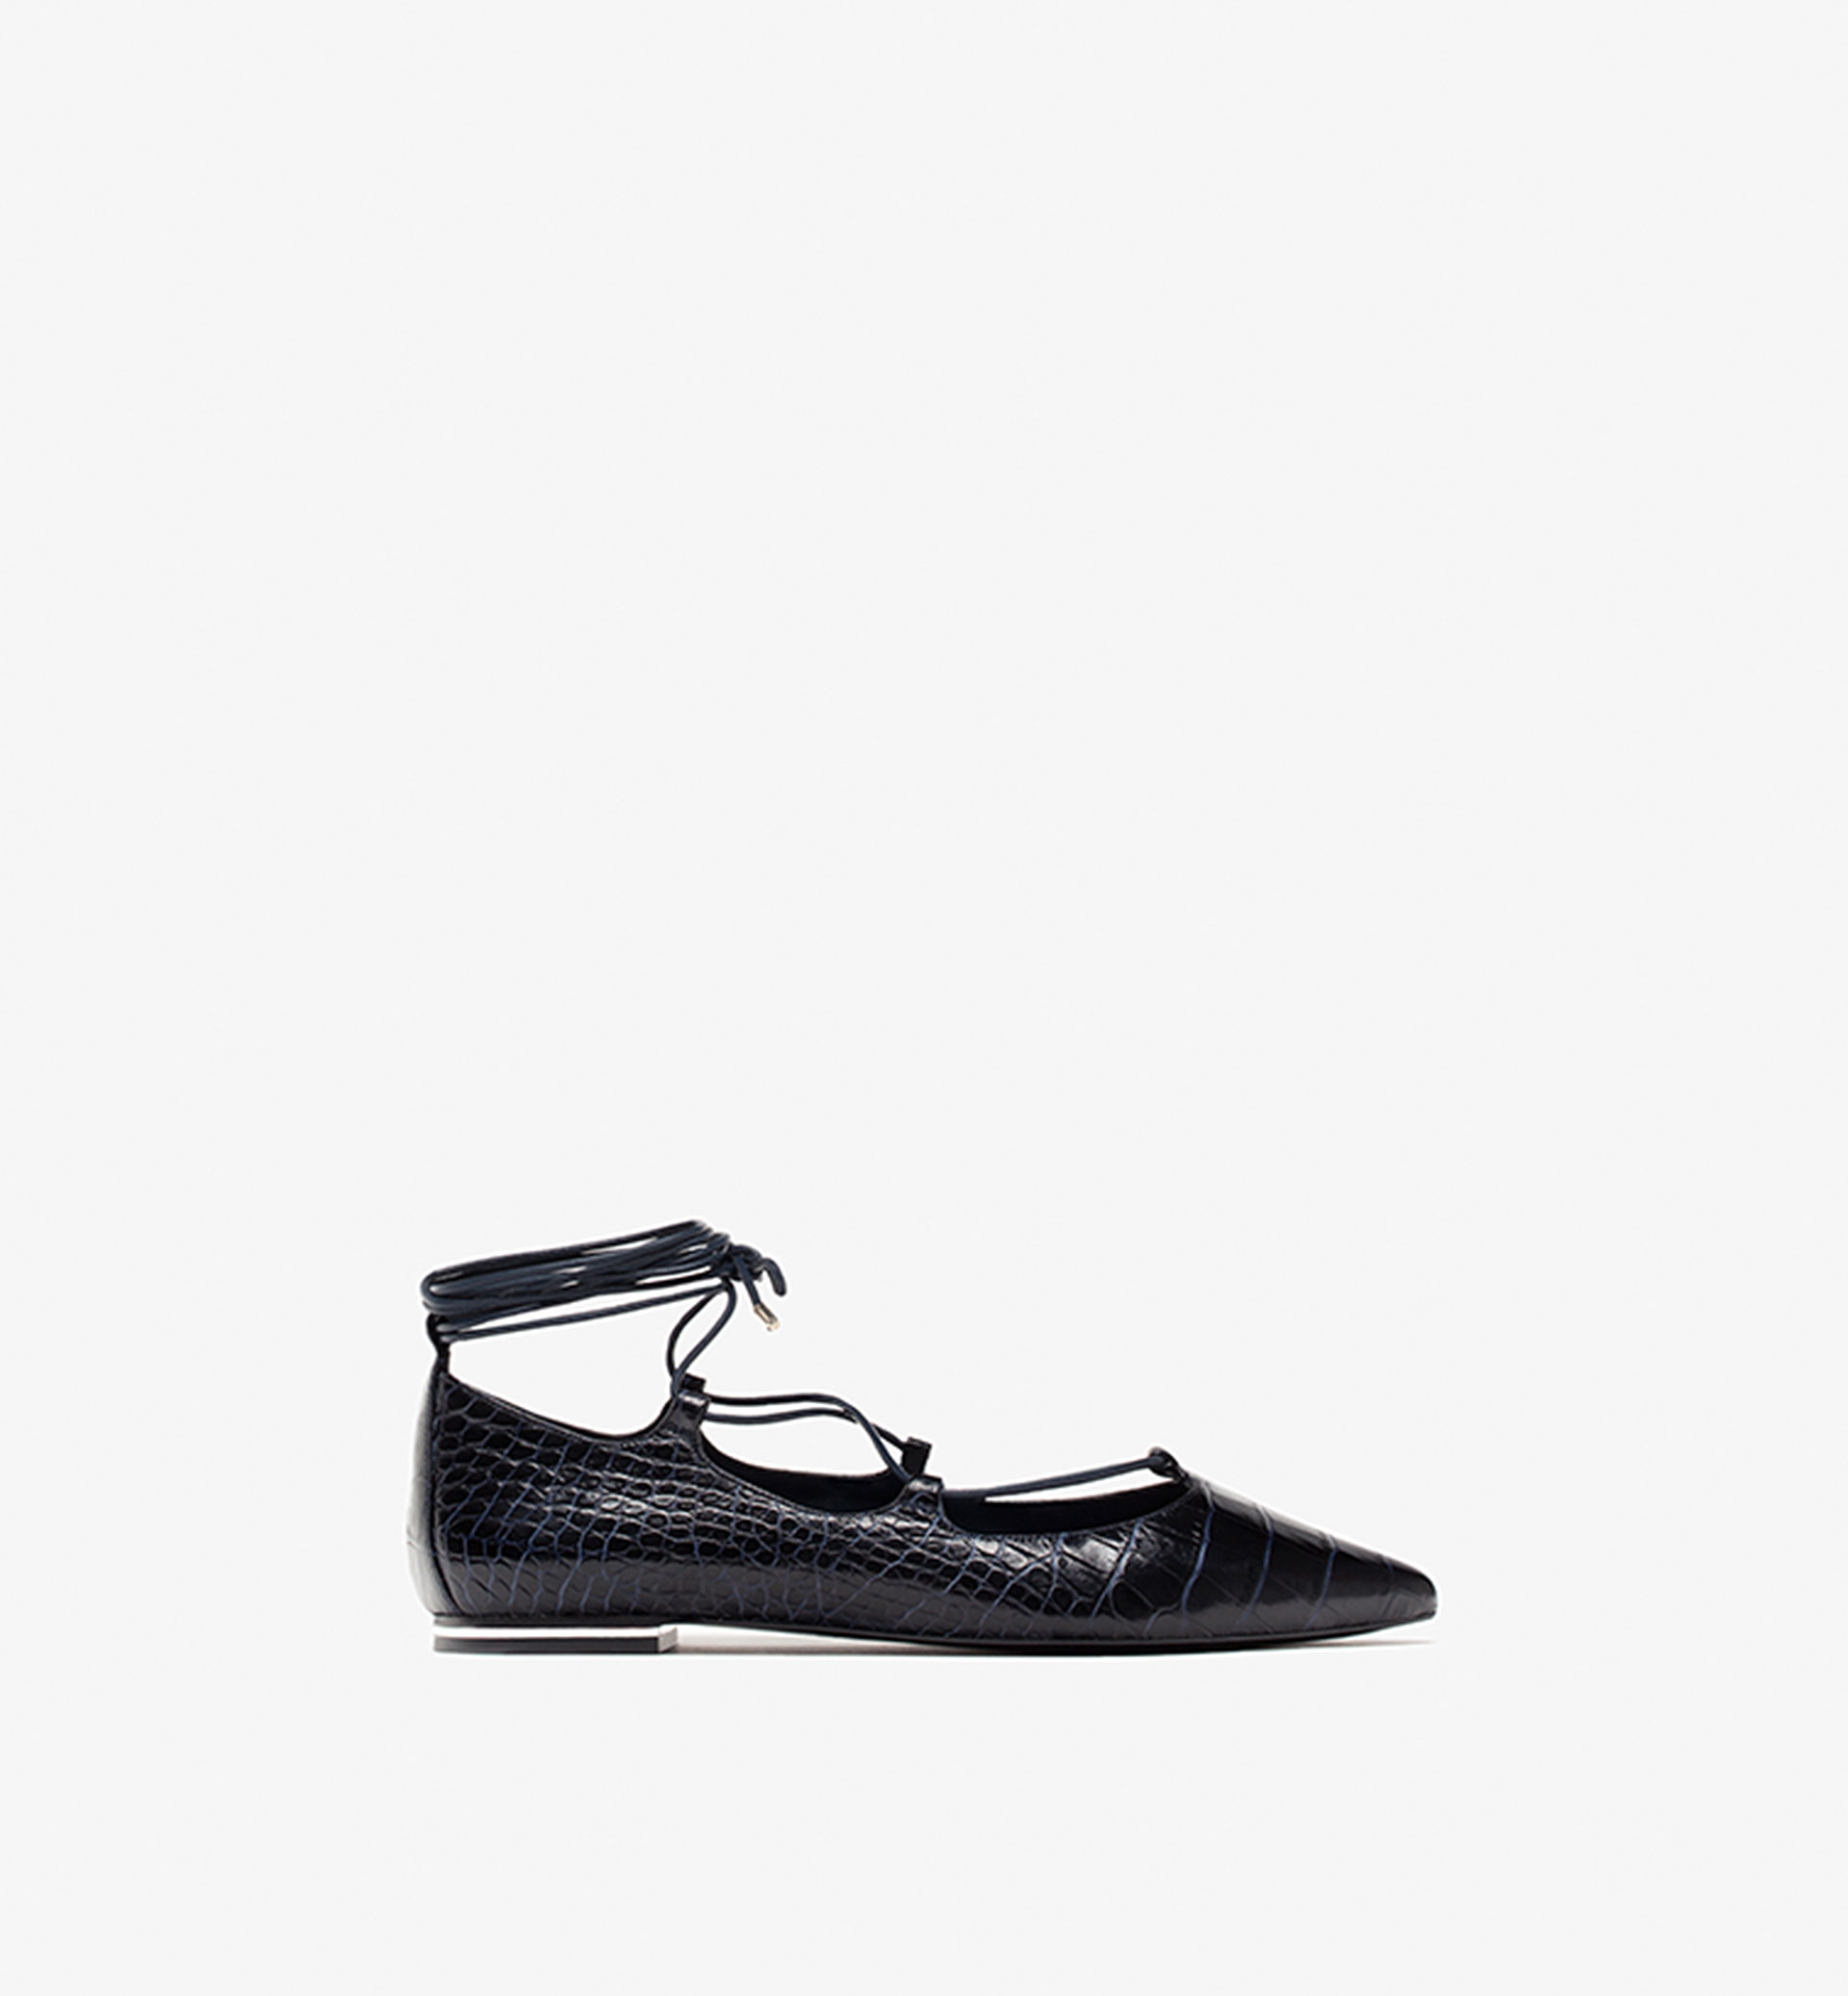 EMBOSSED BALLERINAS LIMITED EDITION